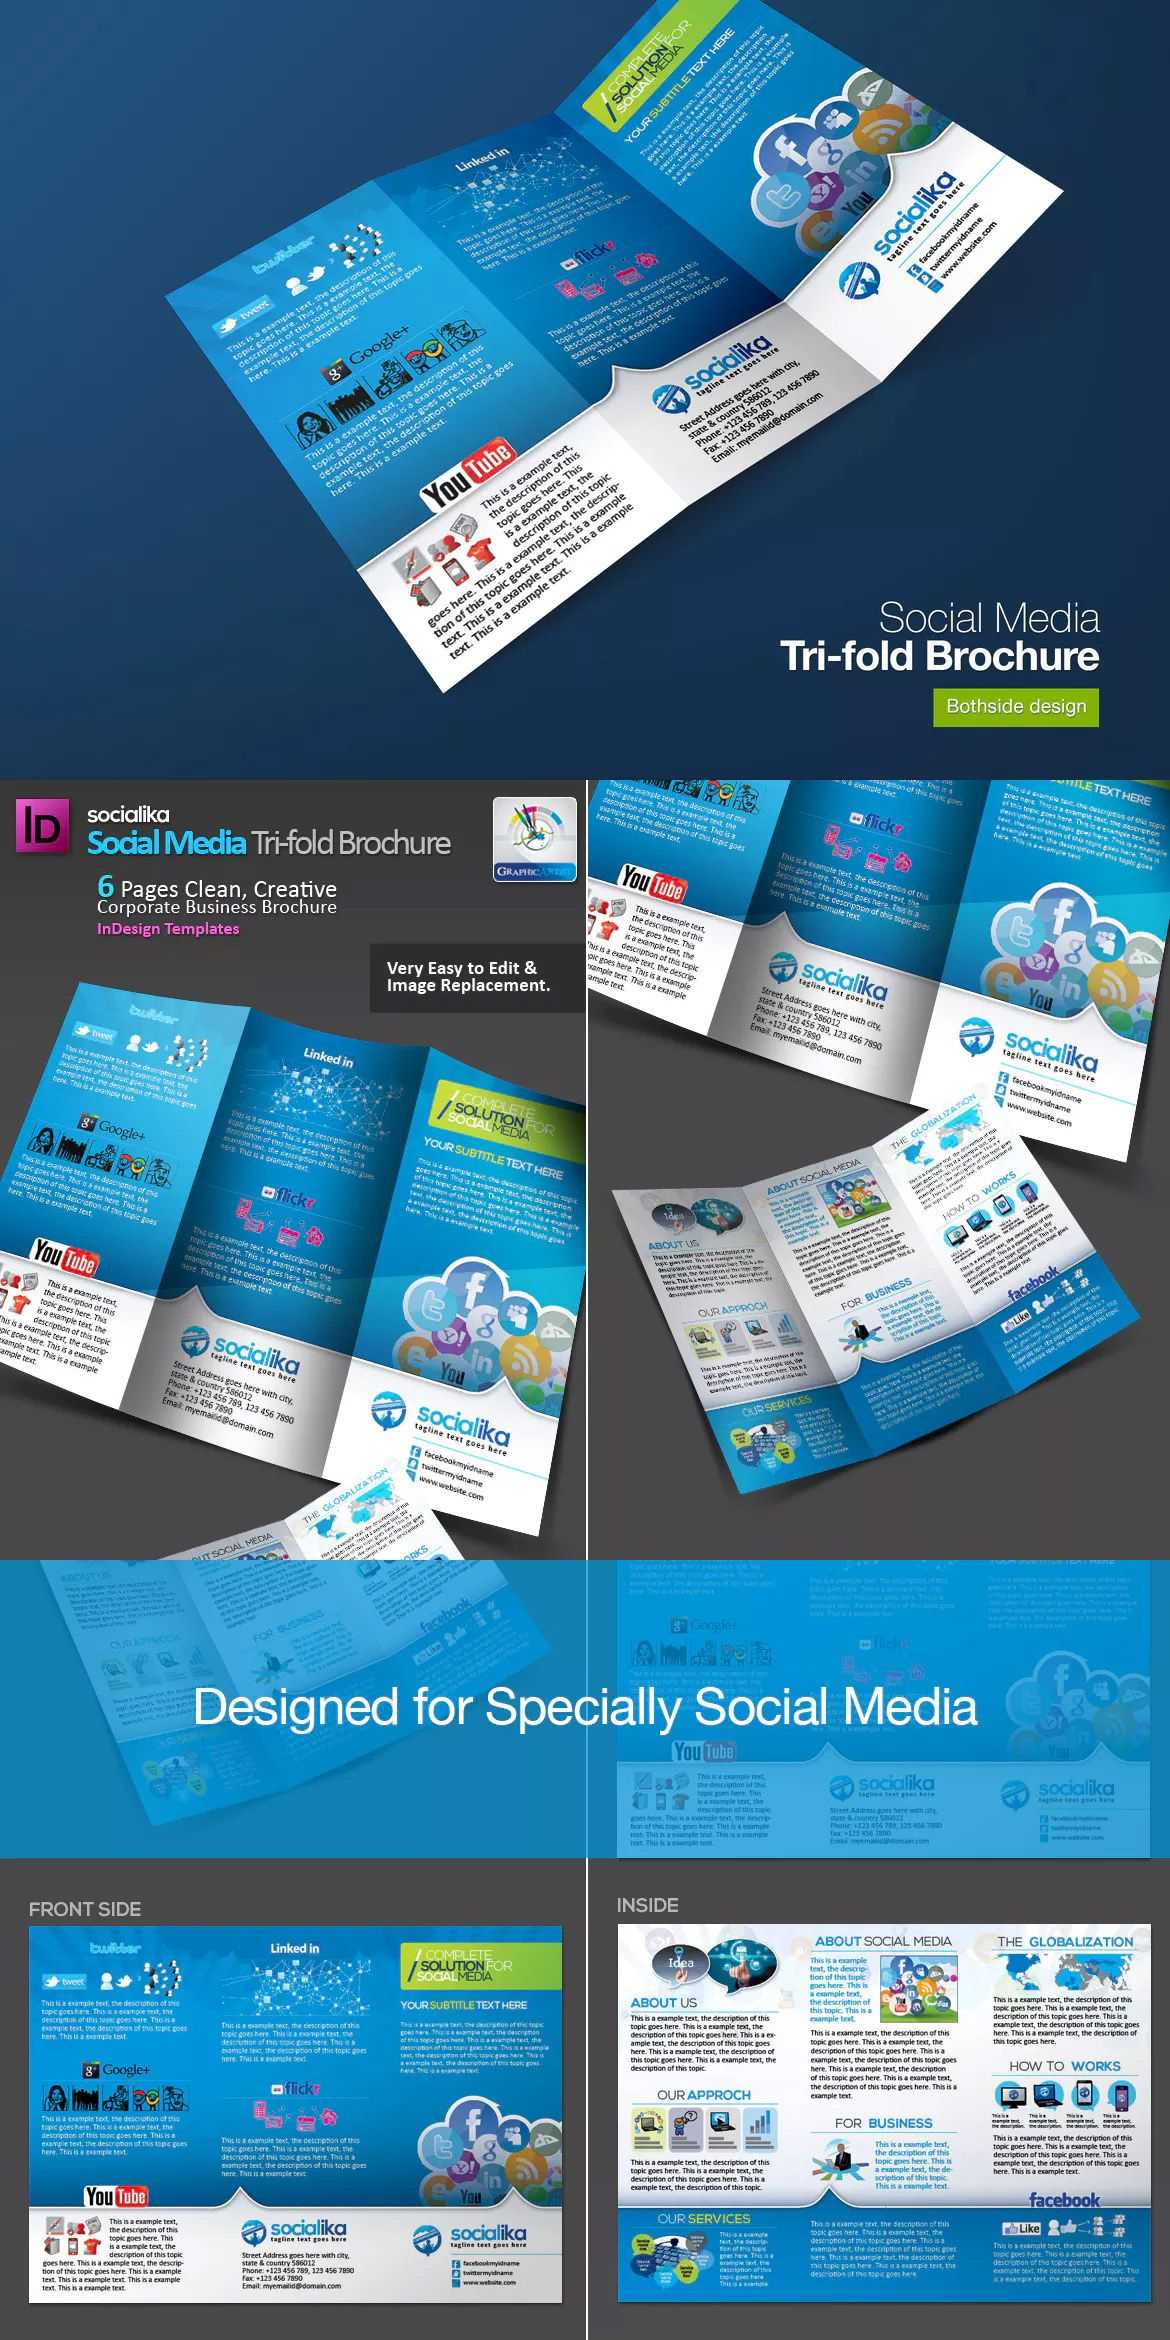 Social Media Tri Fold Brochure Template Indd | Bi Fold Throughout Social Media Brochure Template